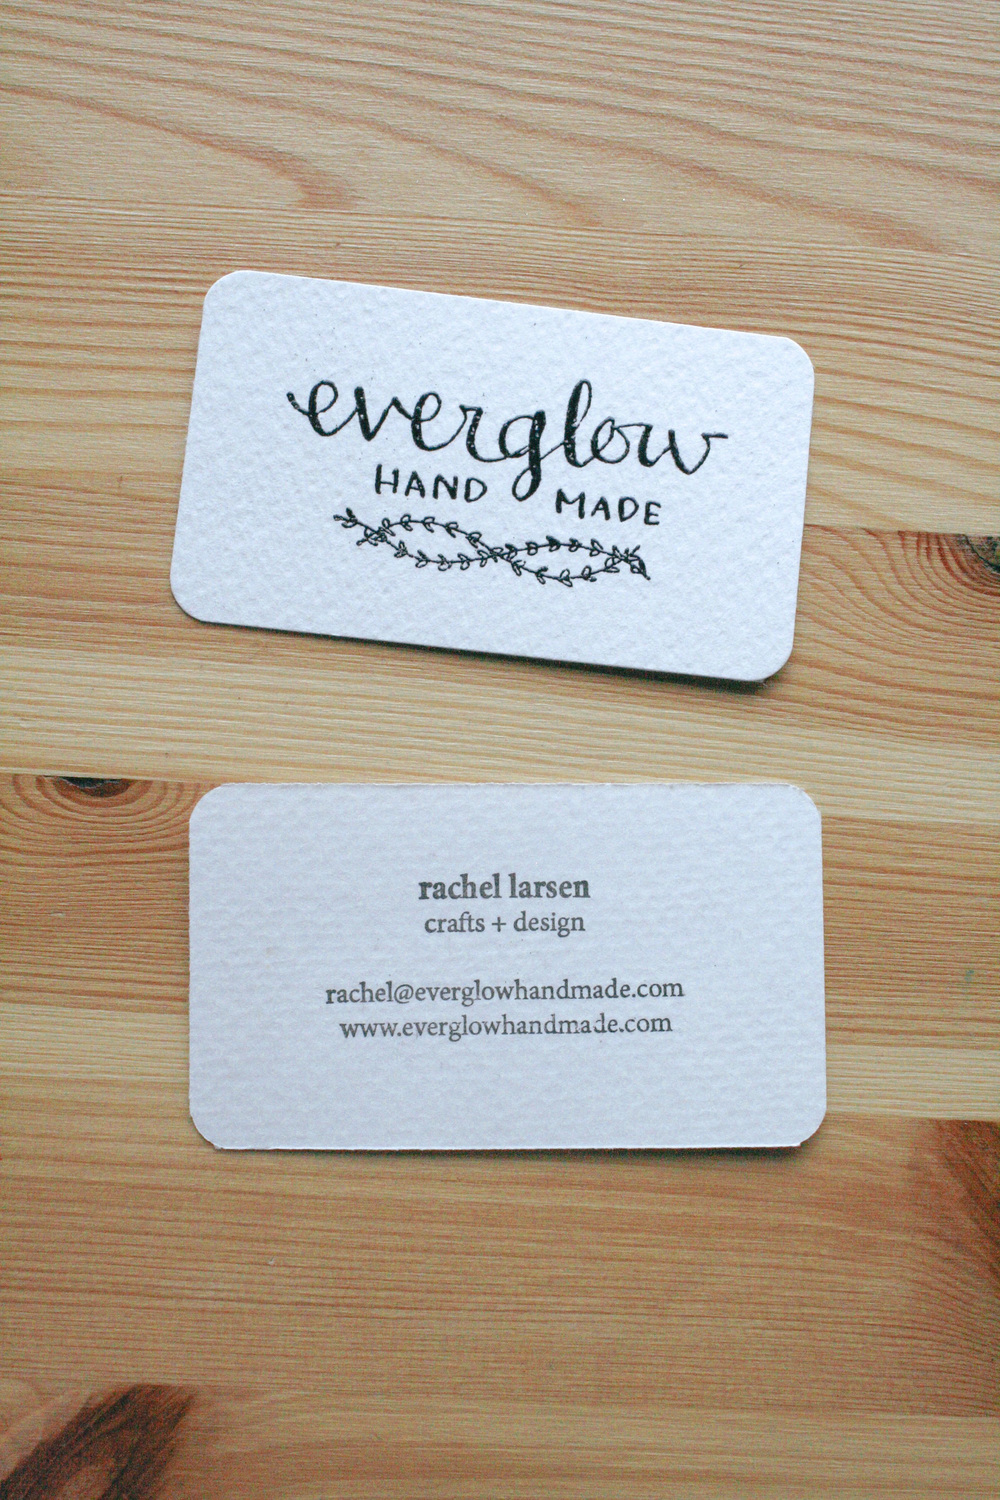 custom calligraphy & wedding invitations in portland, oregon ...